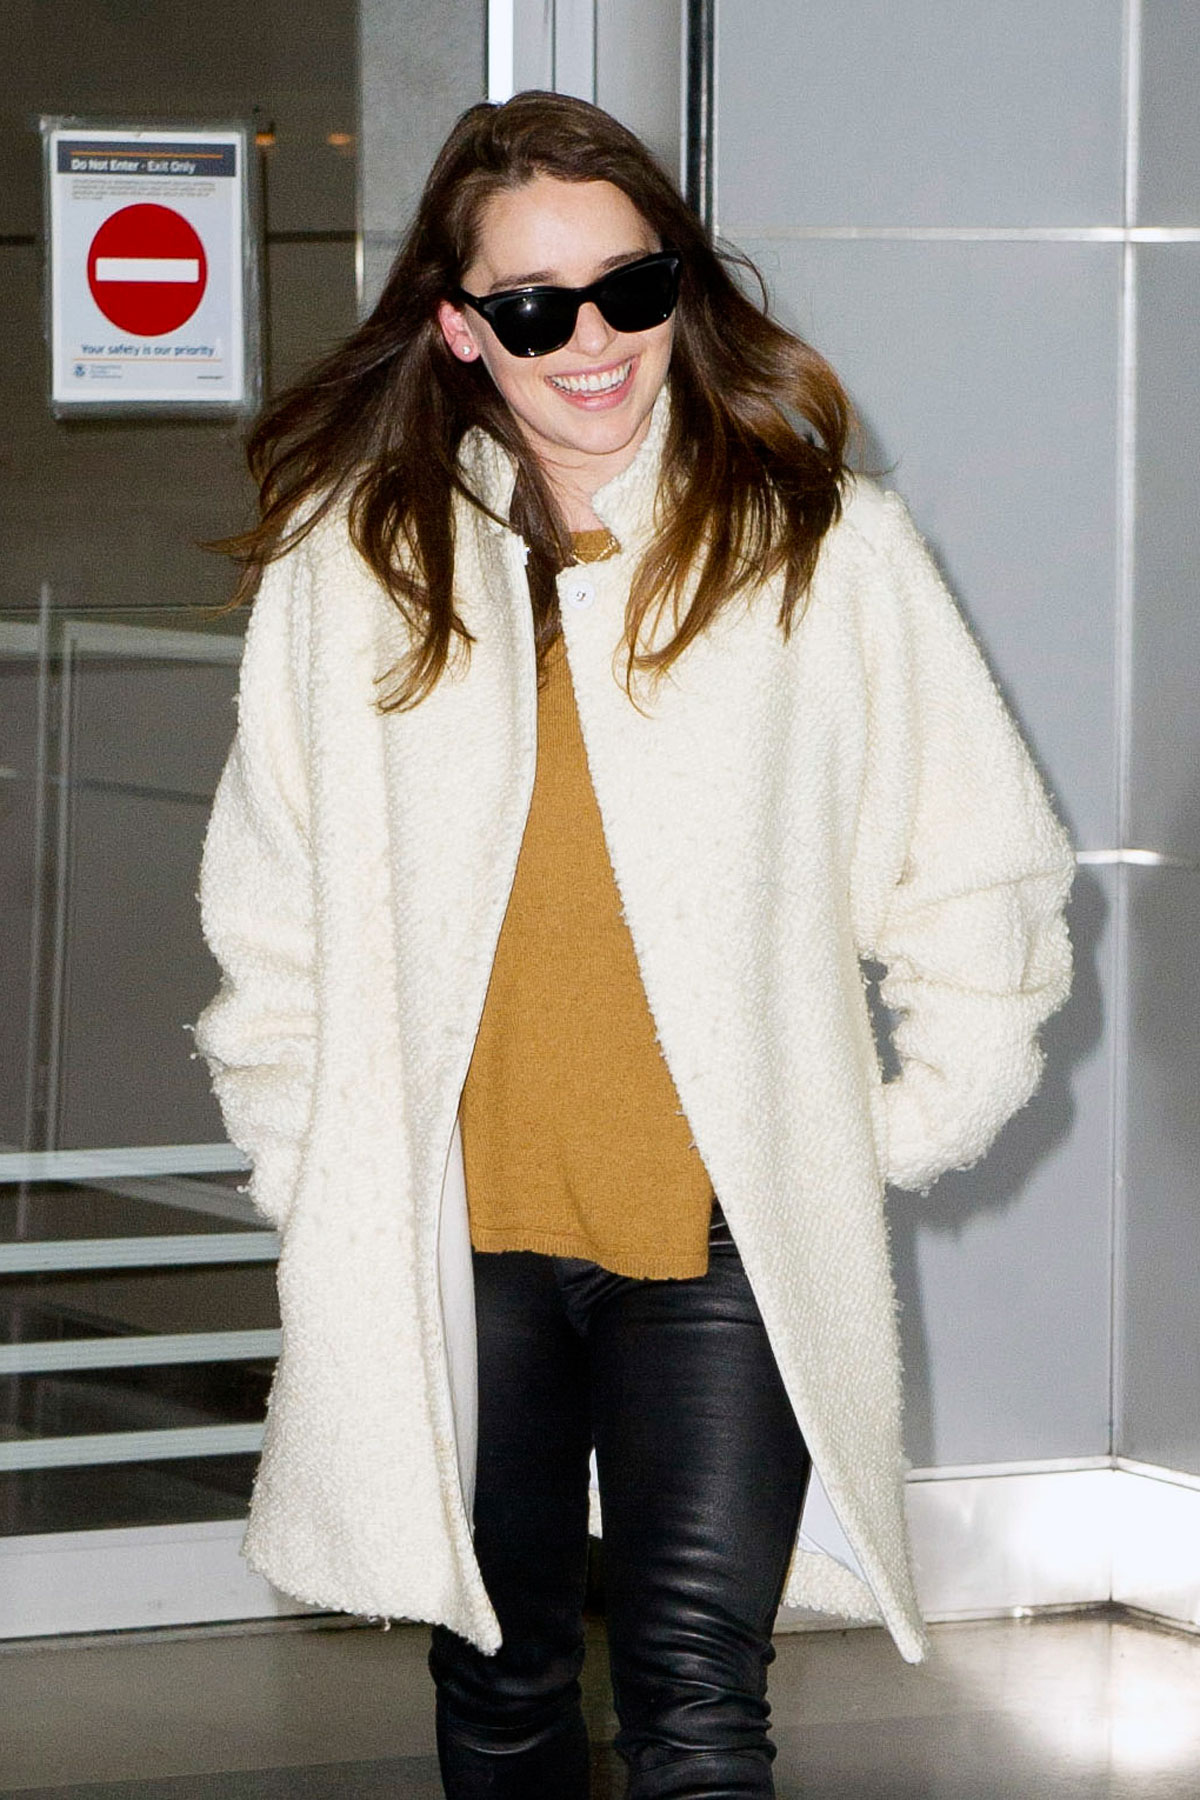 Emilia Clarke arrives at JFK airport